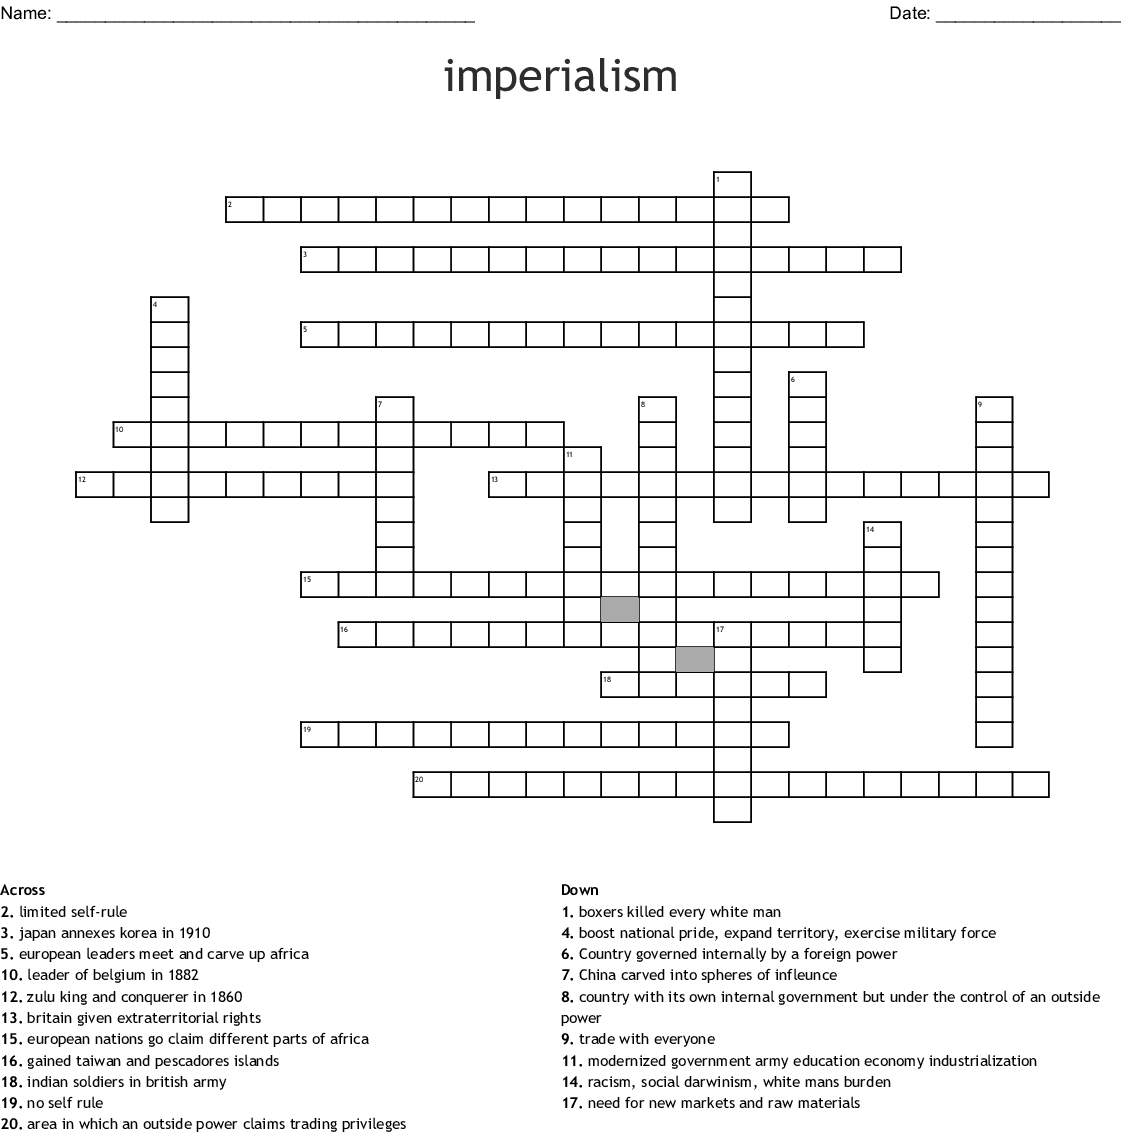 Imperialism Crossword